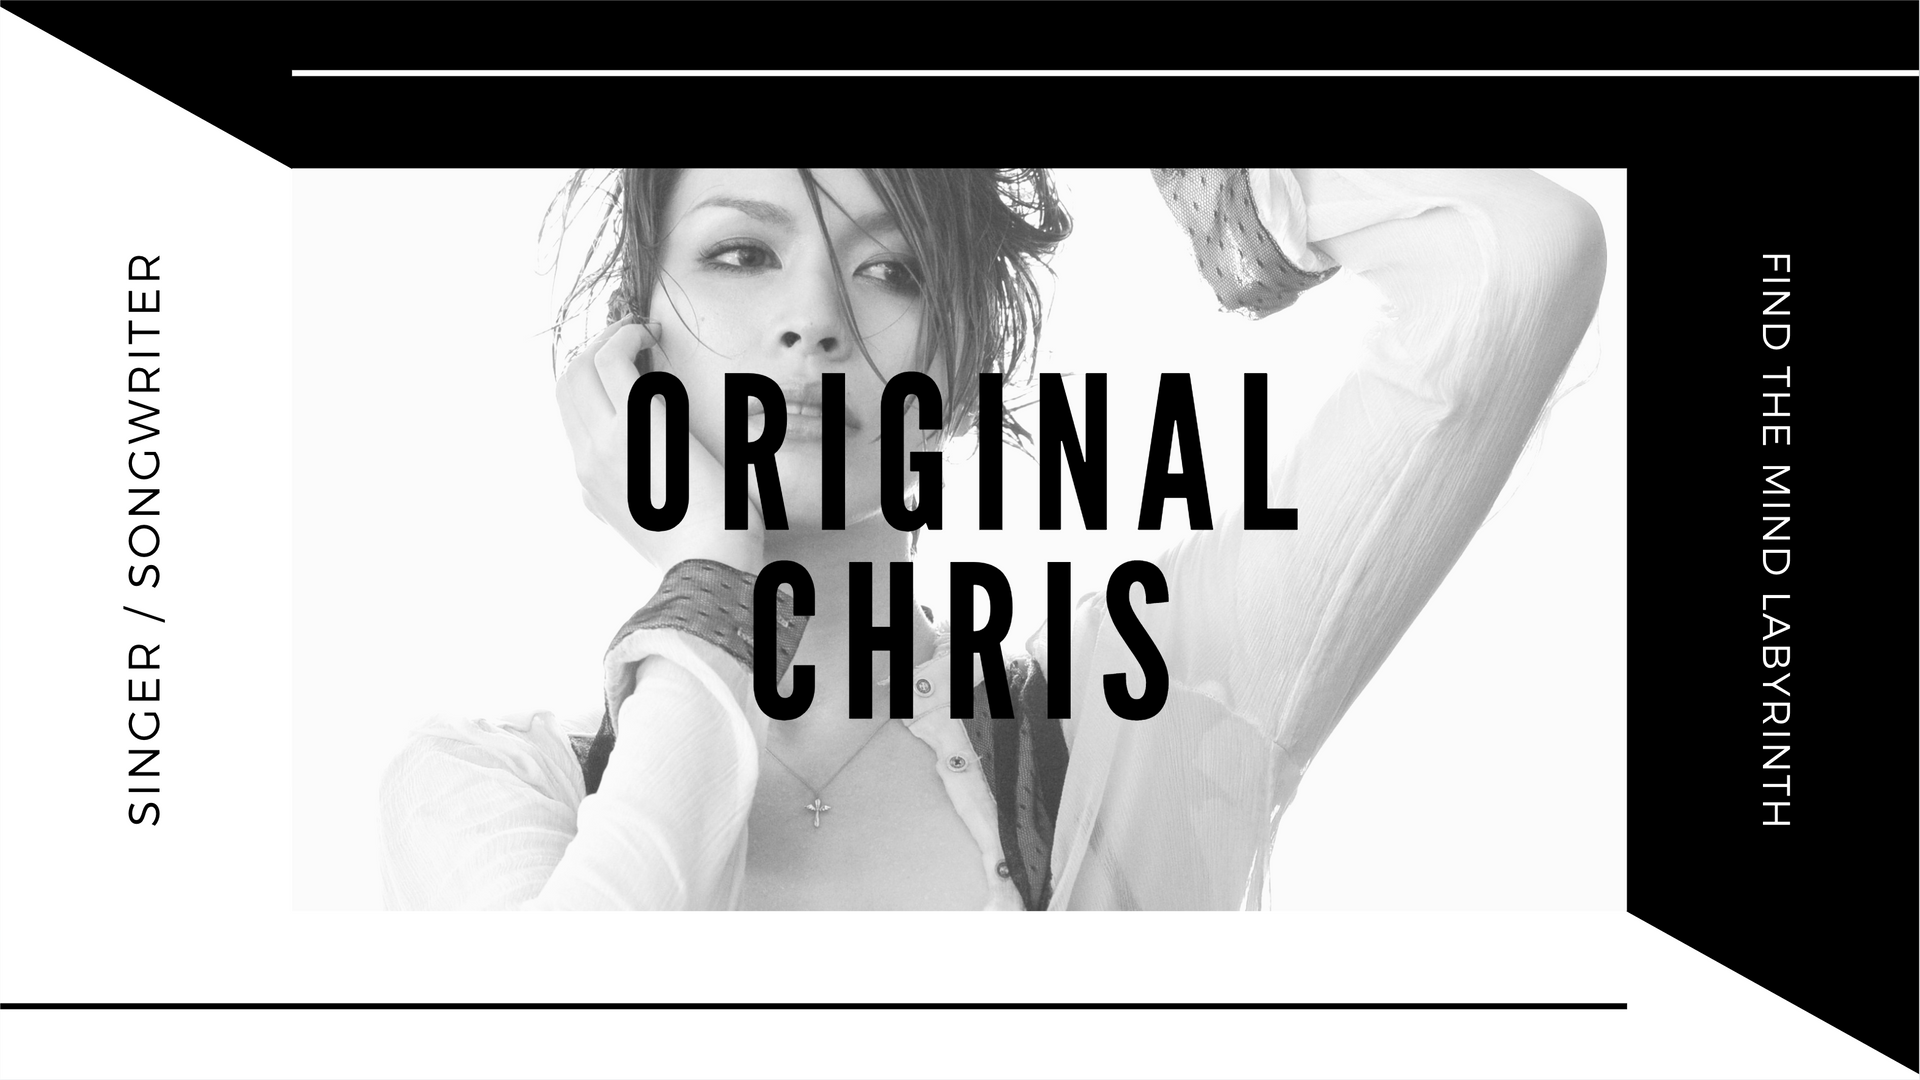 伊藤クリス / CHRIS ITO | SingerSongWriter